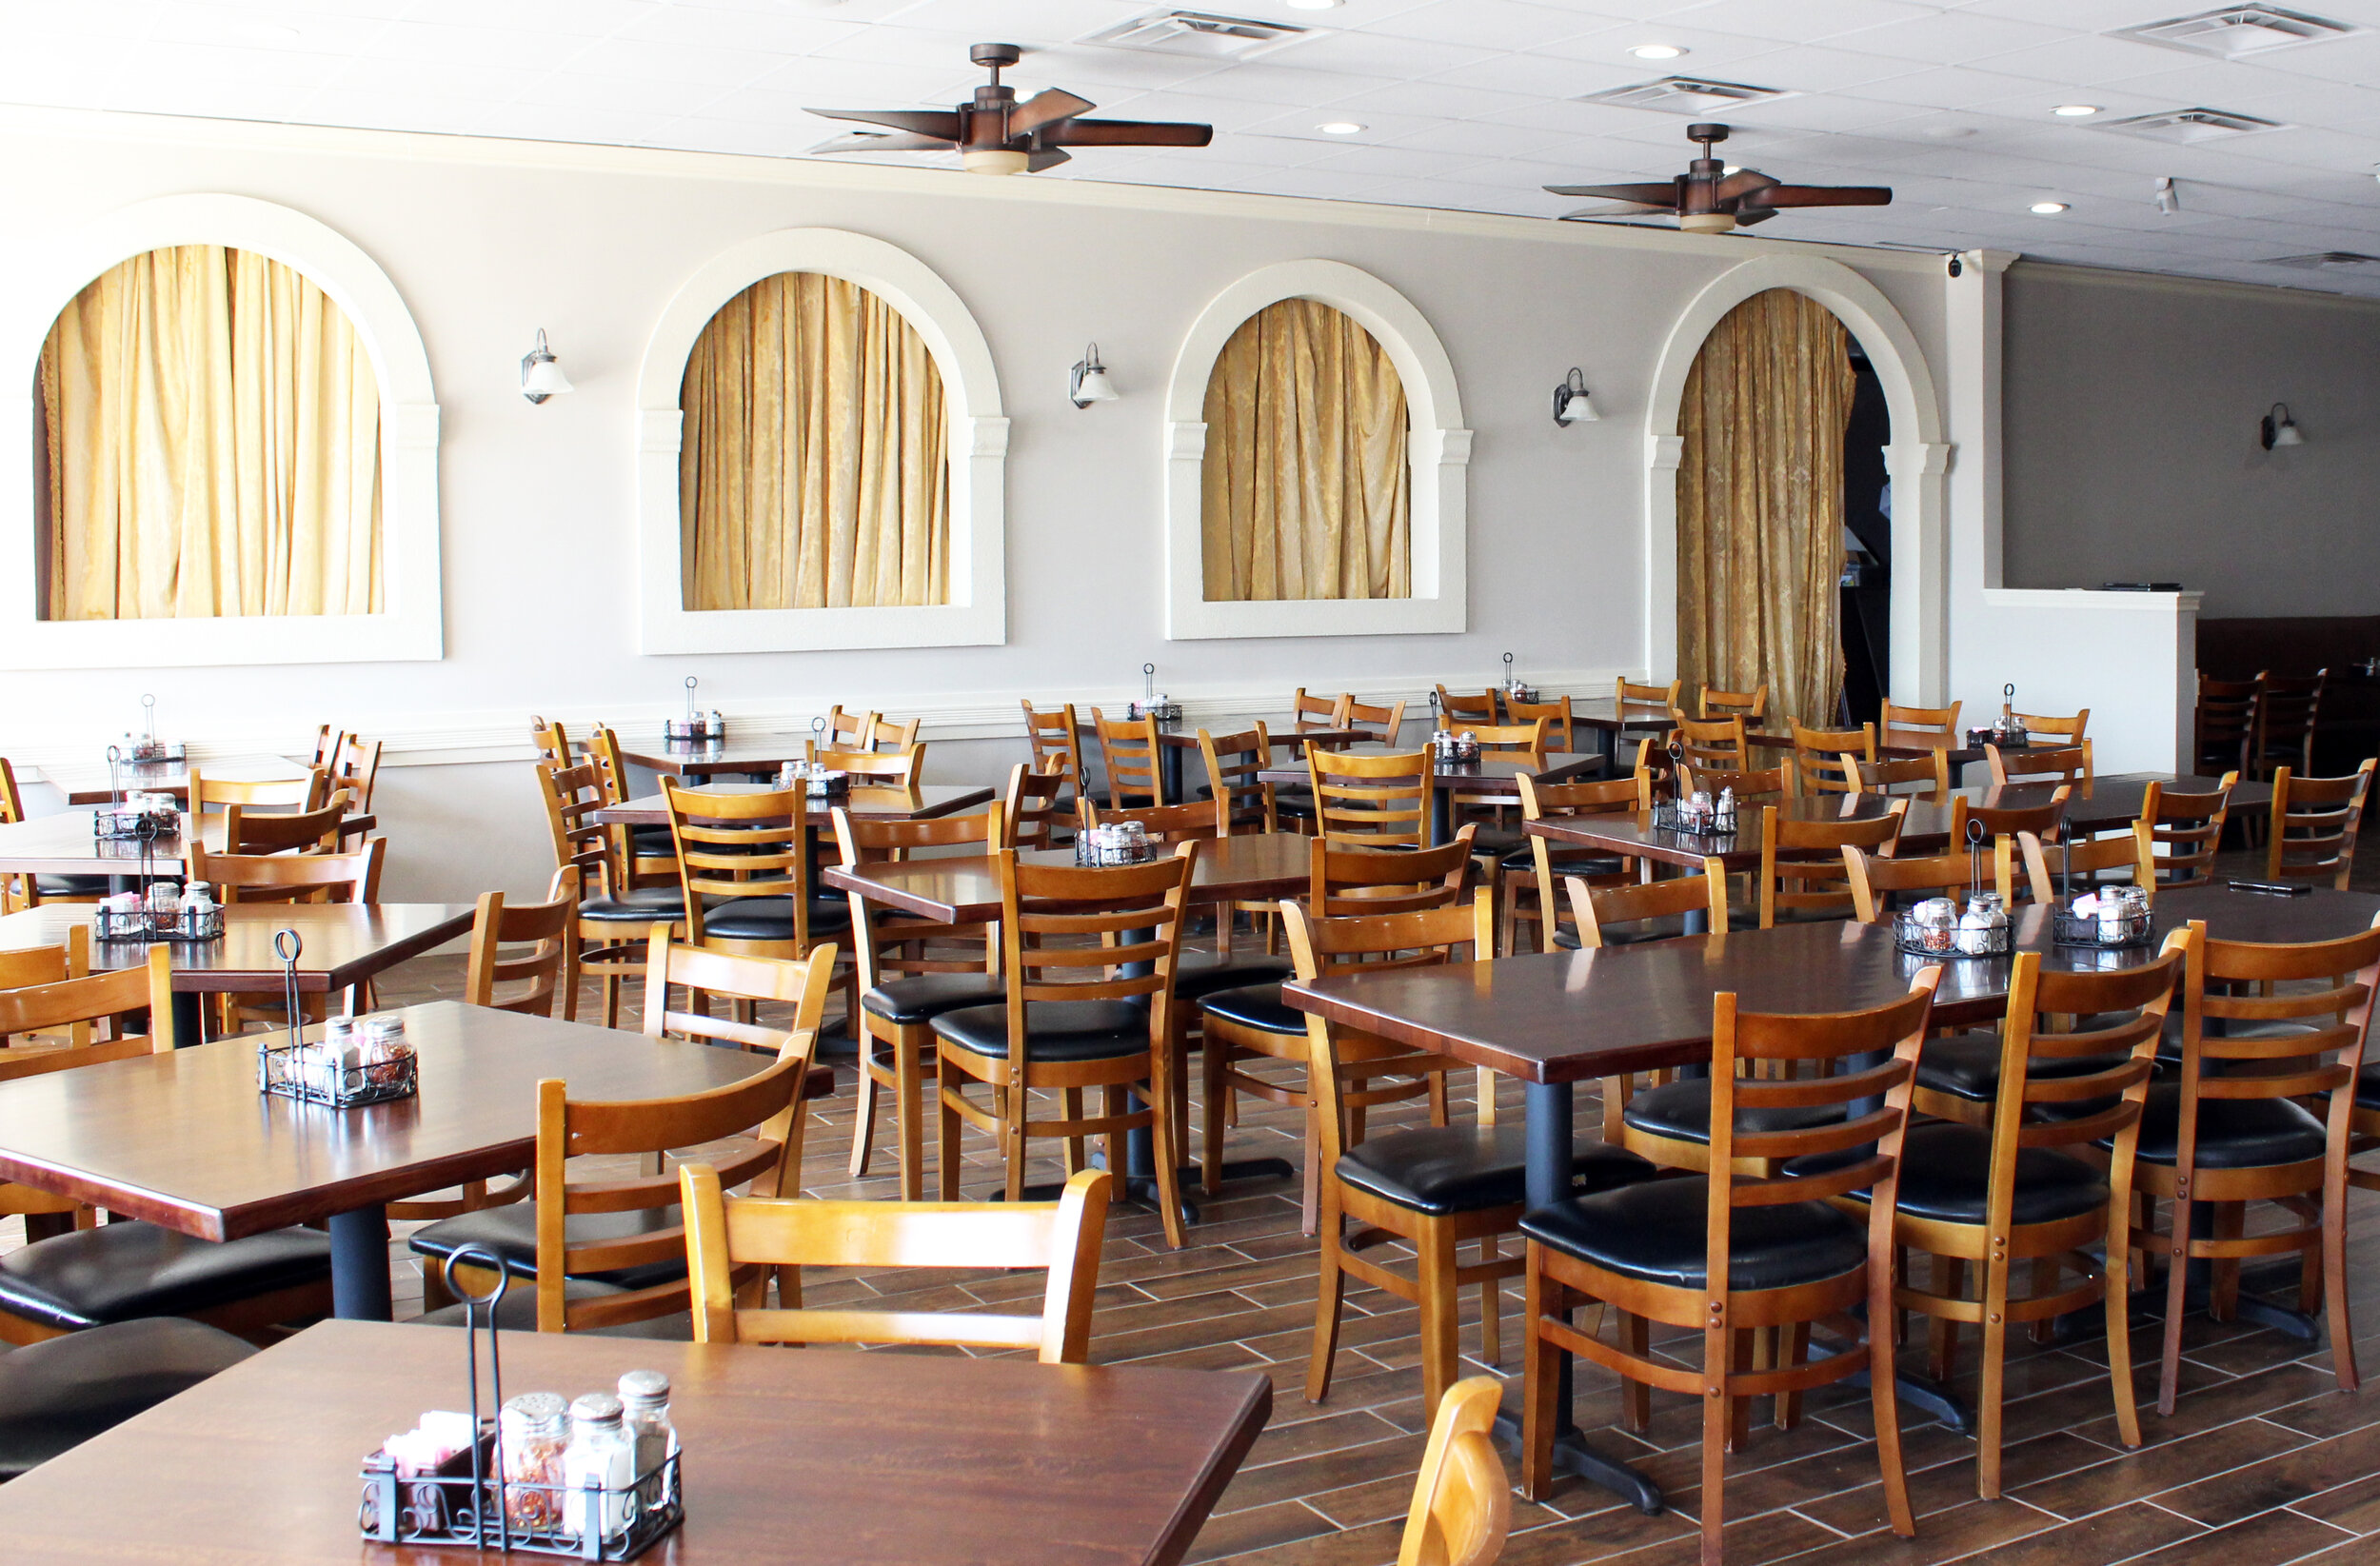 Come and enjoy the recently renovated Napoli's Italian Restaurant.